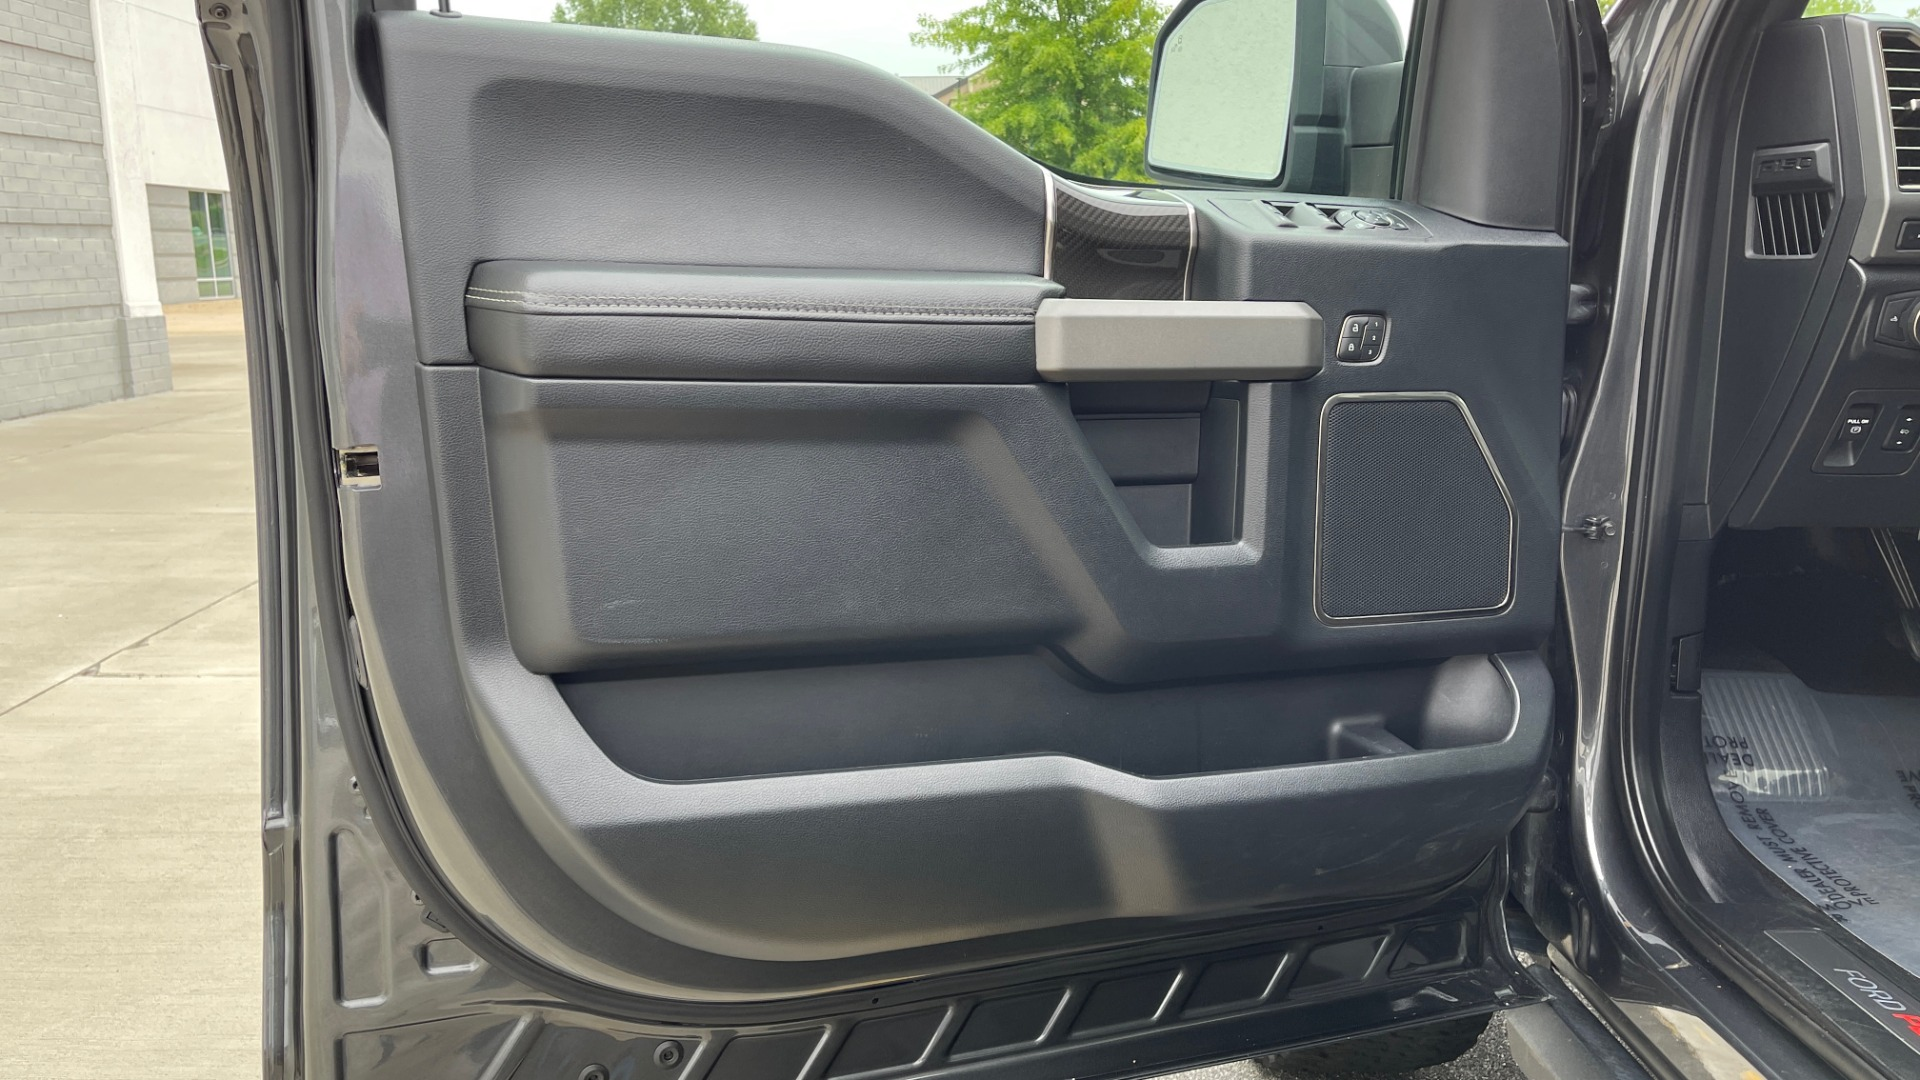 Used 2020 Ford F-150 RAPTOR 4X4 SUPERCREW / NAV / B&O SOUND / SUNROOF / REARVIEW for sale $74,900 at Formula Imports in Charlotte NC 28227 28